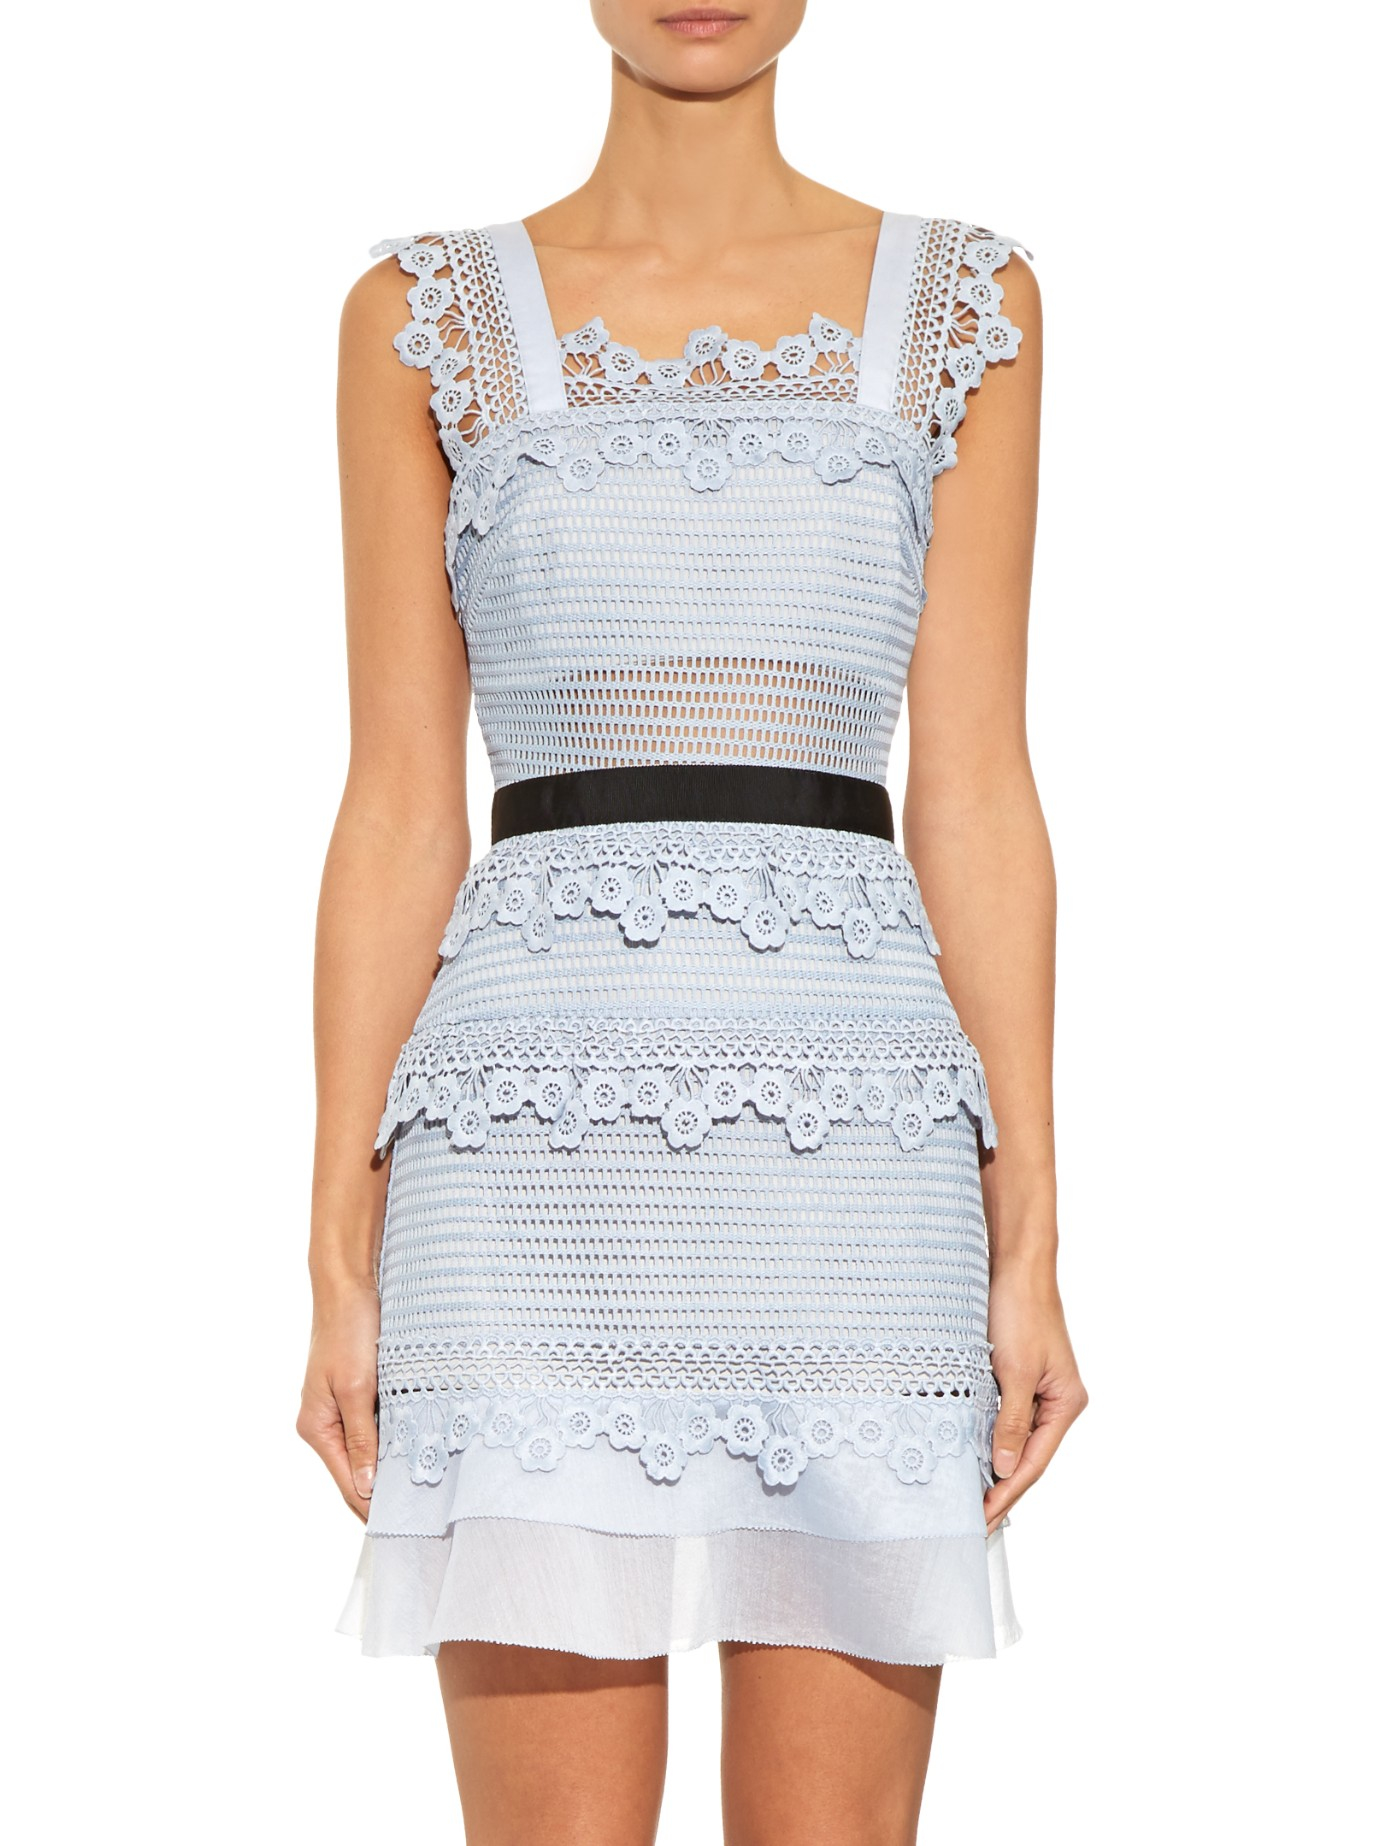 Self-Portrait Petunia Lace Mini Dress in Blue - Lyst